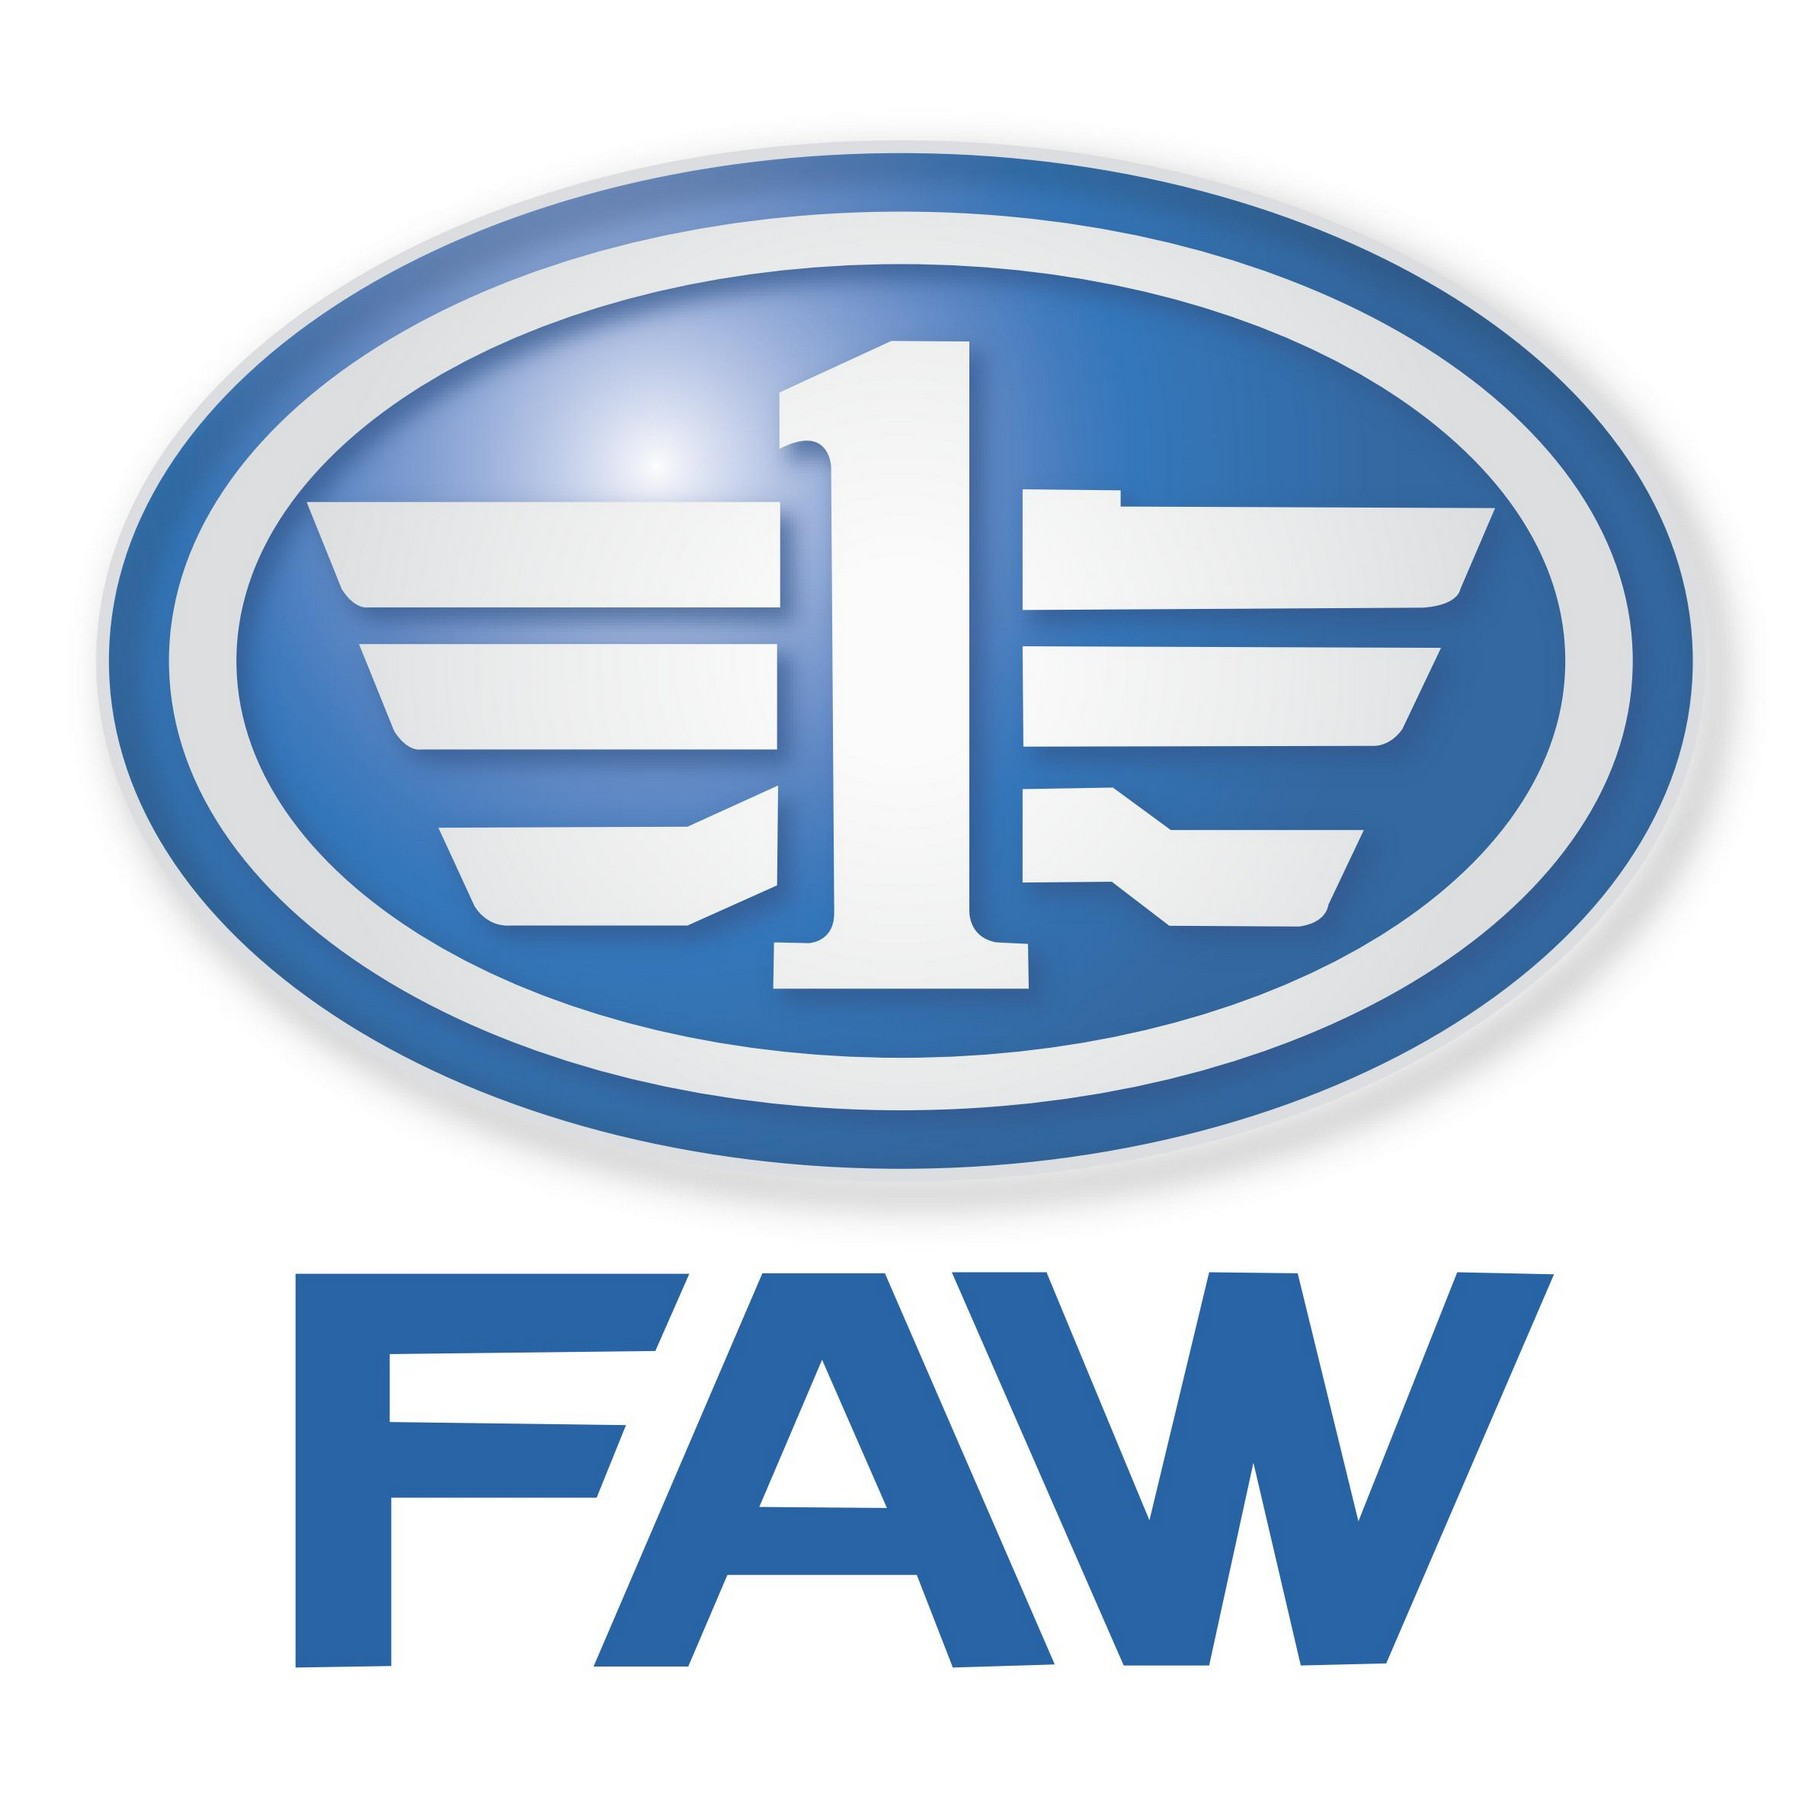 FAW Symbol Wallpaper